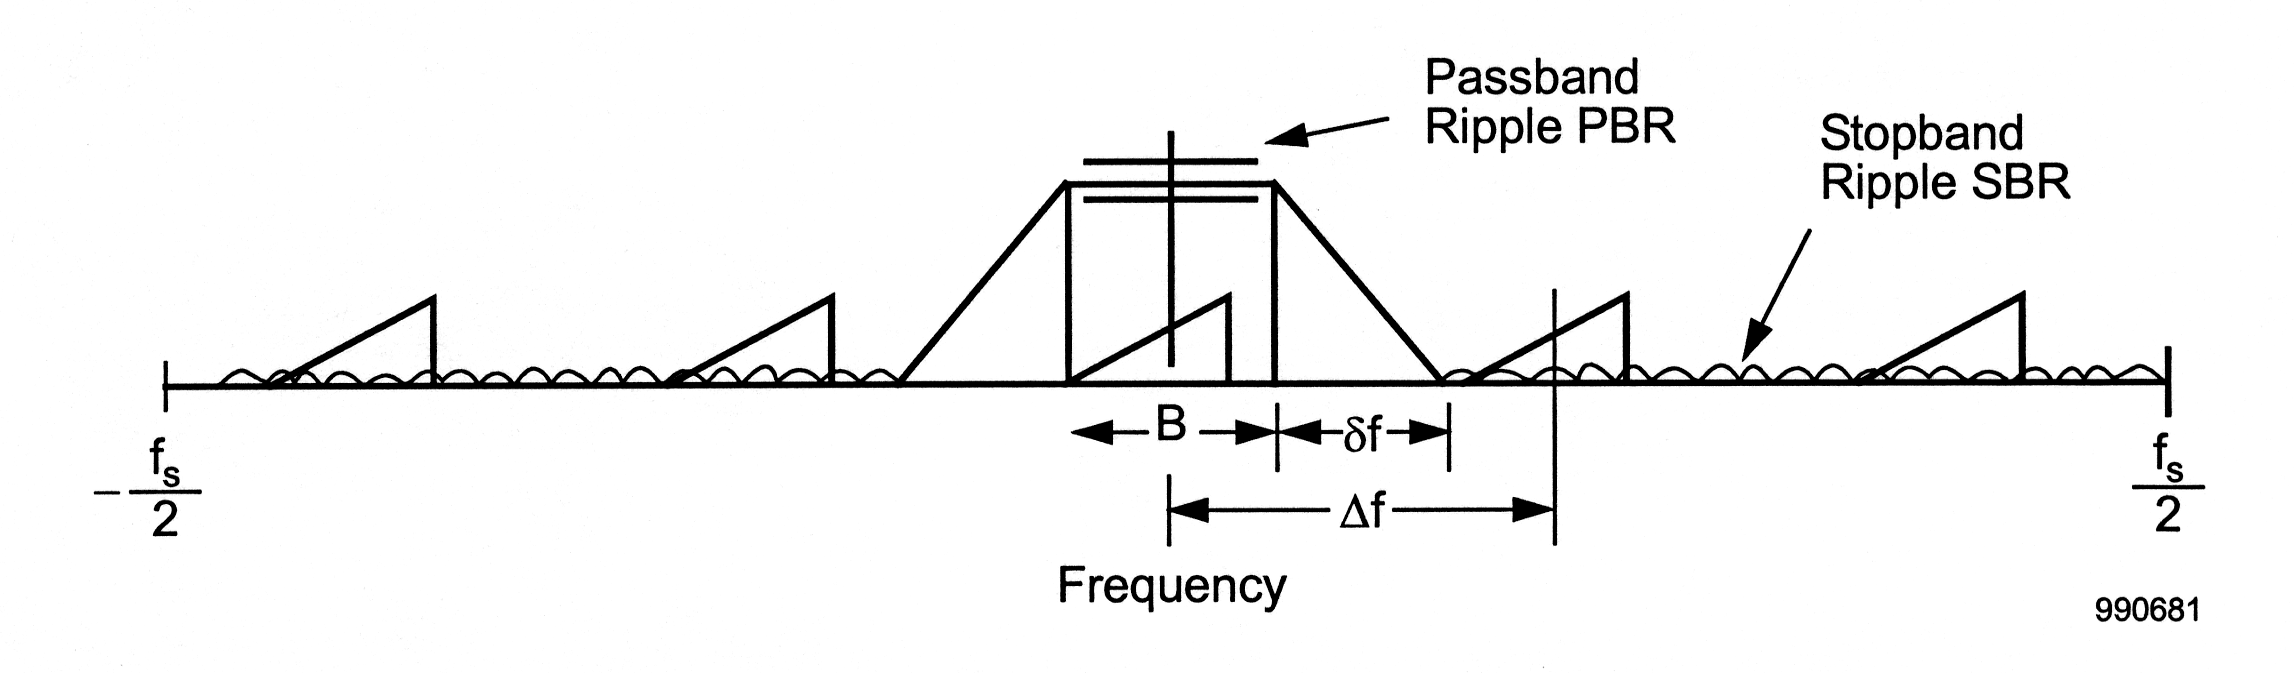 This graph consist of a horizontal line labeled Frequency spanning the length of the image with its extremes labeled -f_s/2 on the left and  f_s/2 on the right. There are five right triangles spaced at equal distances from each other sitting on the line. On top of the line there is also a waveform running across the horizontal line. The waveform continues past the first two triangles and then the wave and then ends at a large right triangle next to the middle smaller right triangle. On the other side of this triangle is another large right triangle that is turned the opposite direction with its right angle on the bottom left. The expanse between the far right of the large triangle of the left and the far left of the right triangle is labeled below the horizontal line and is labeled B. In the middle of the small middle triangle is a line that extends vertically and then intersect a line that connects the top corners of the large triangles. The middle line extending from the center circle is also crosses two parallel horizontal lines. An arrow points to these horizontal lines and labels it Passband Ripple PBR. The expanse between the beginning and the end of the right large triangle is labeled below the horizontal line as sf. The expanse from the center of the line to the middle of the second little triangle from the right. it is labeled delta f. On the right side of the large right triangle the waveform begins again. Between the right two triangles is labeled Stopband Ripple SBR.